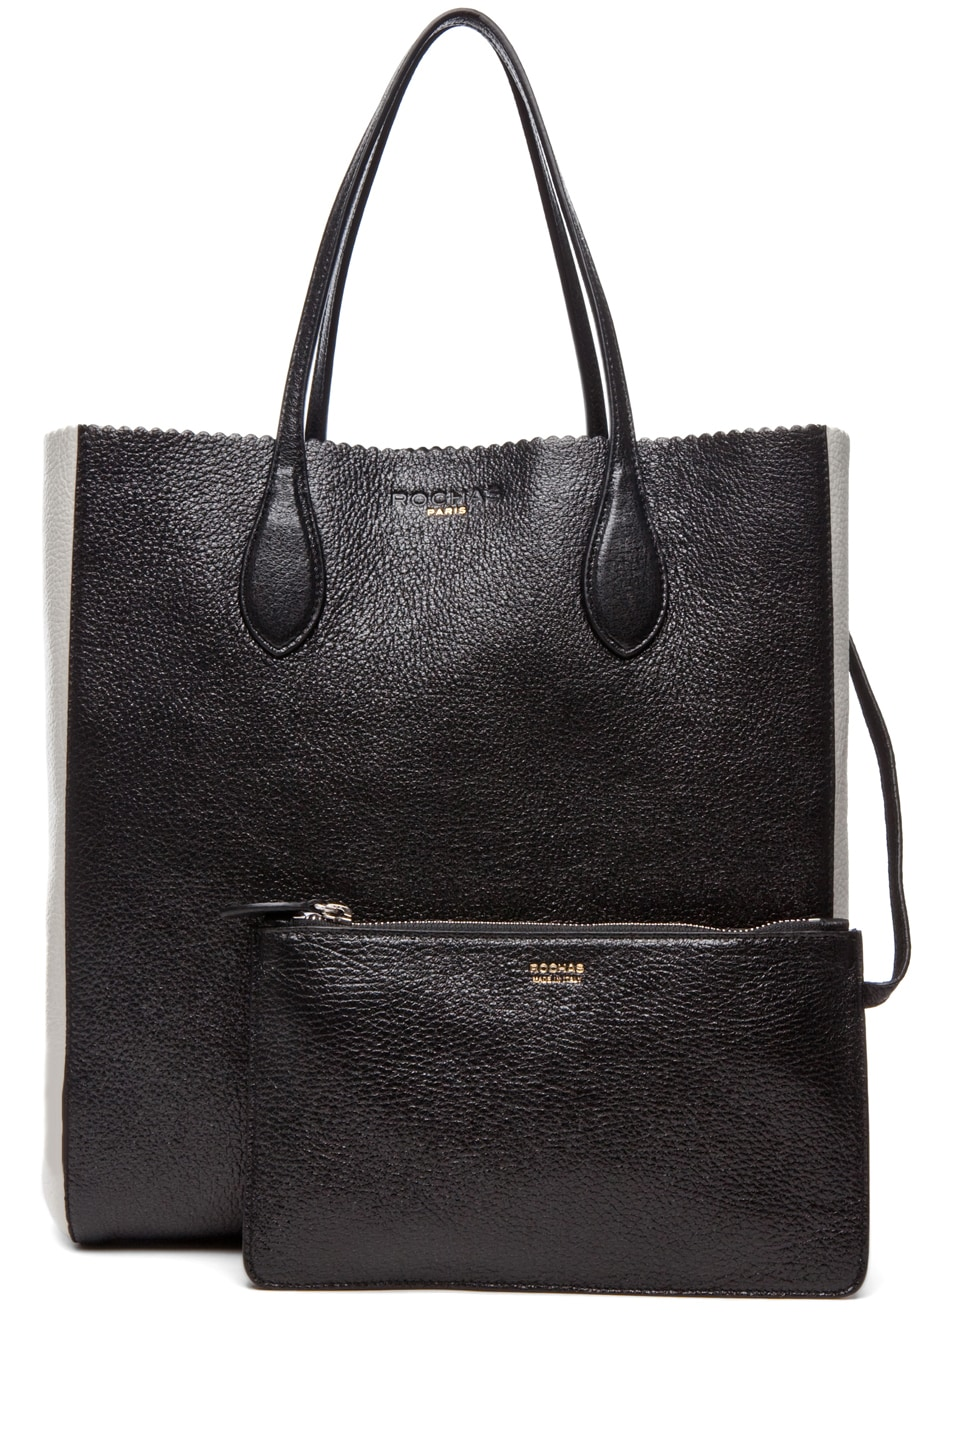 Image 5 of ROCHAS Borsa Tote in Black & White